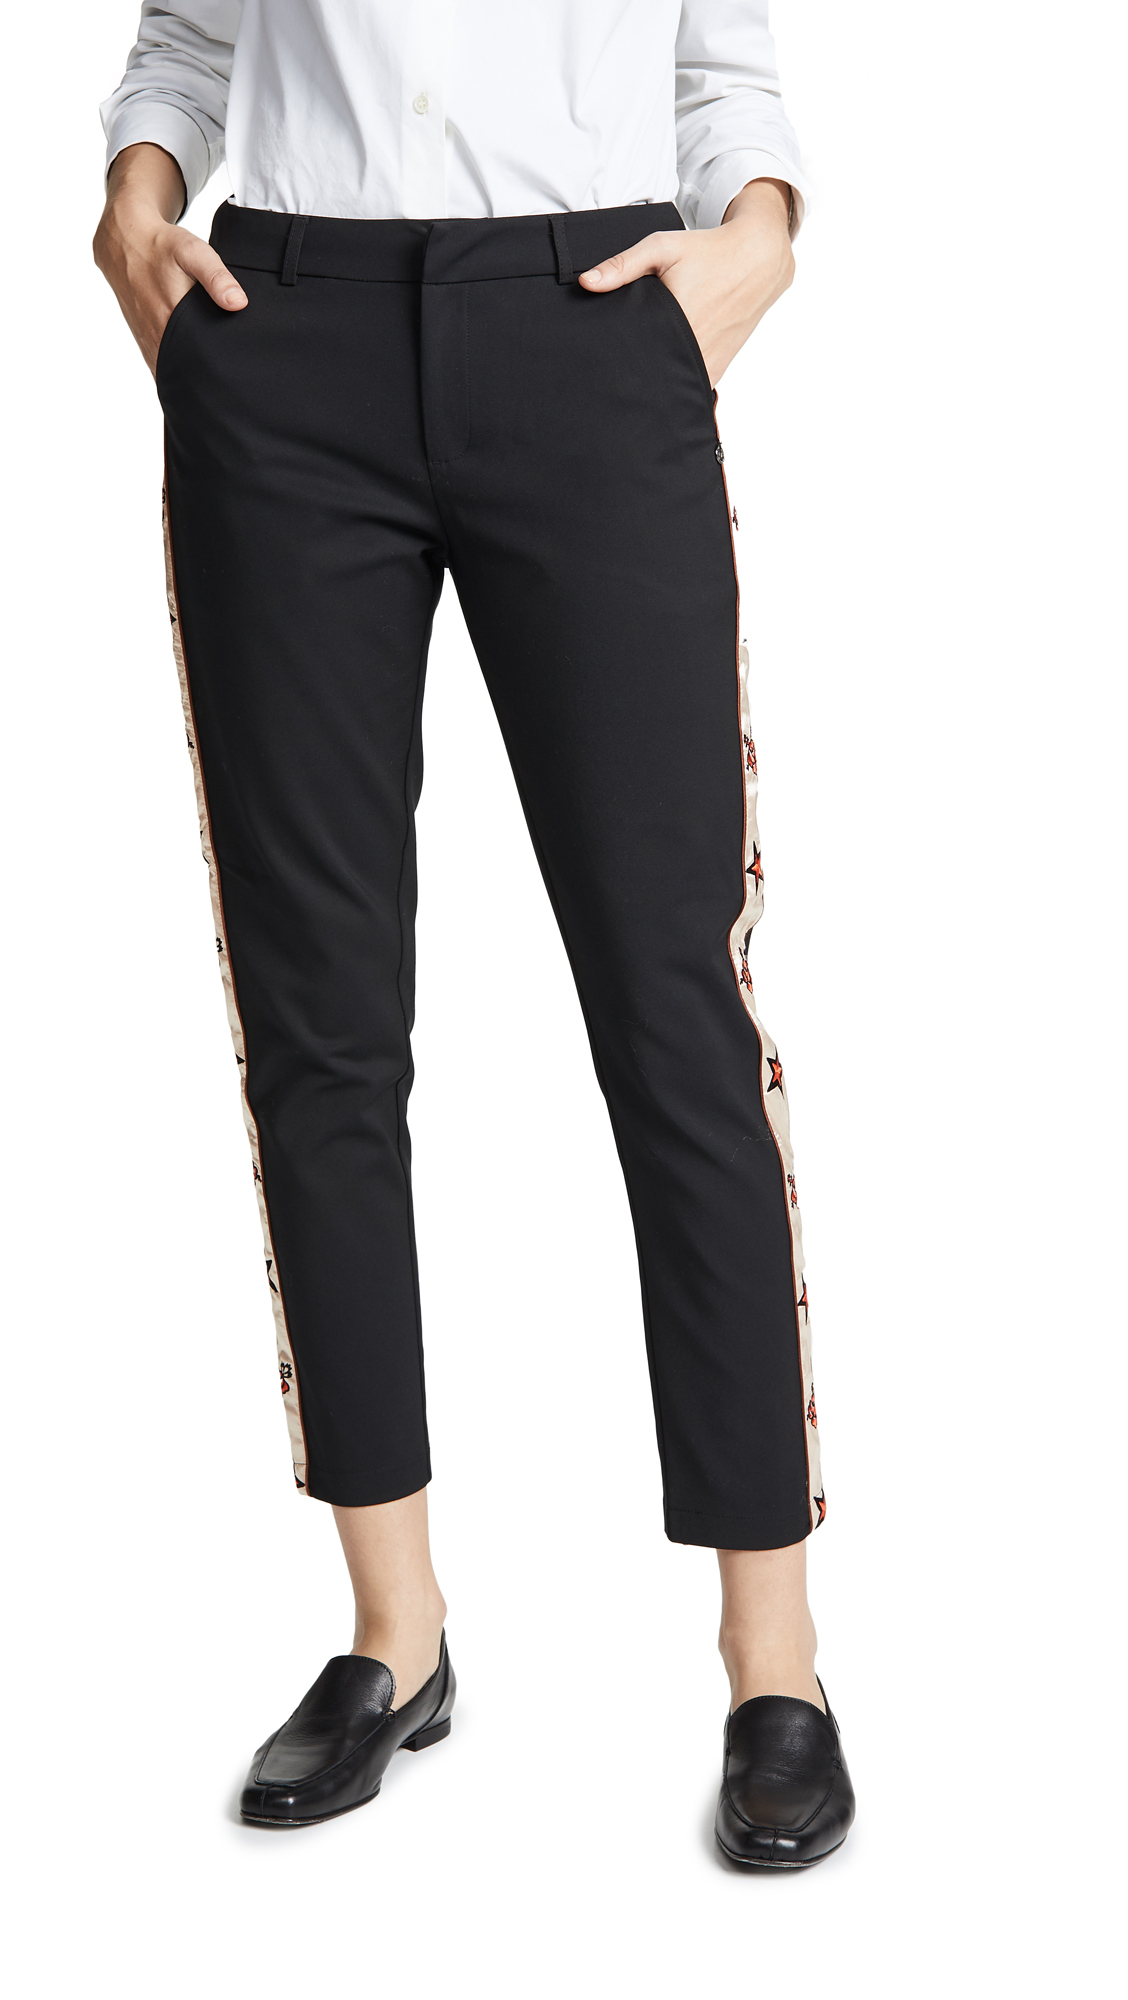 Scotch & Soda/Maison Scotch Side Embroidered Tailored Pants In Black